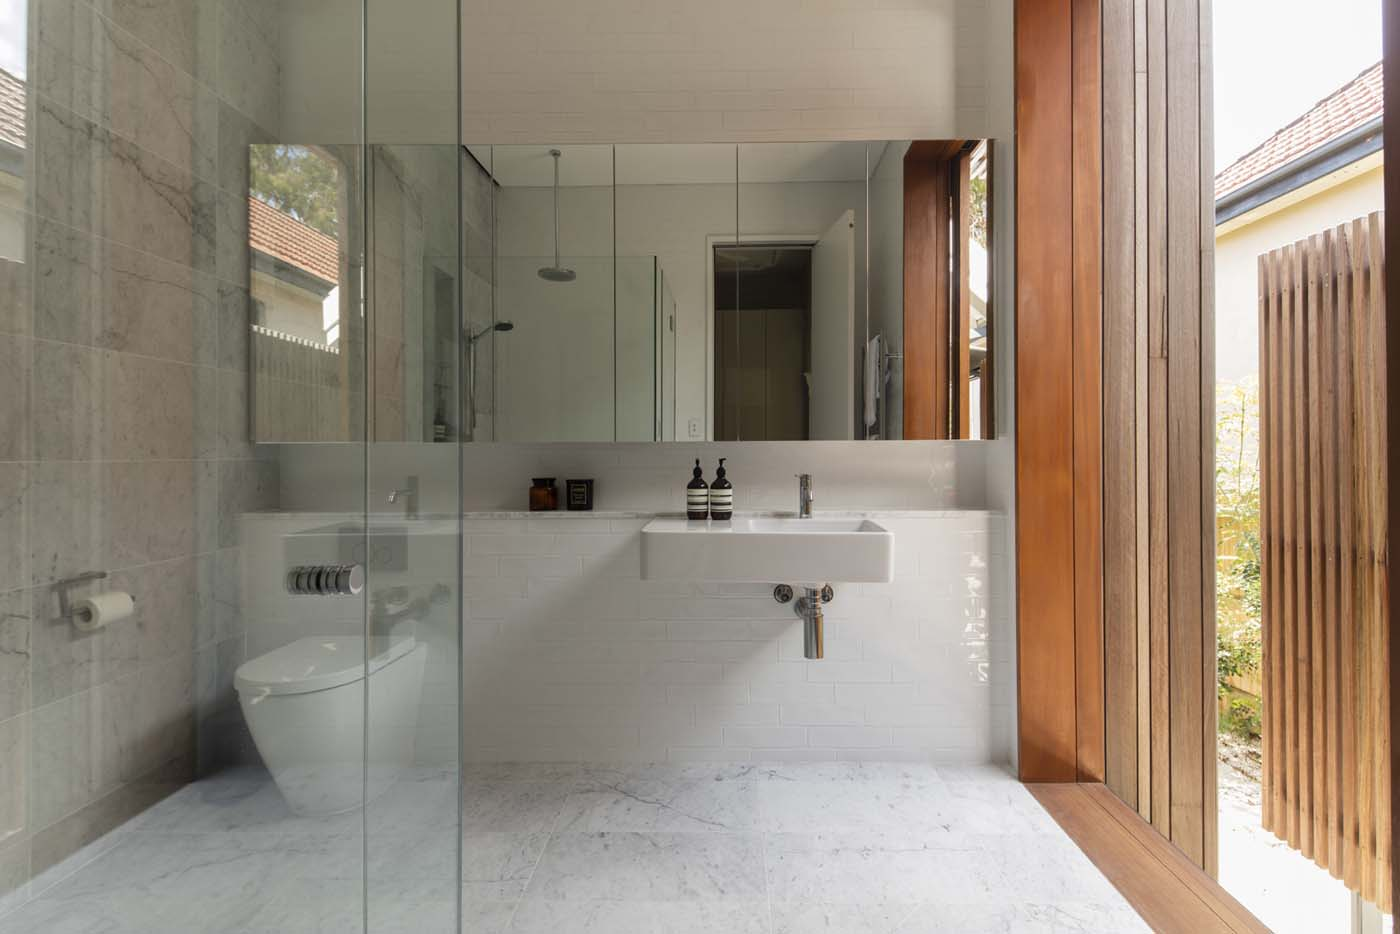 Sung Dobson house by Sam Crawford Architects, Sydney. Bathroom with links to outdoors.